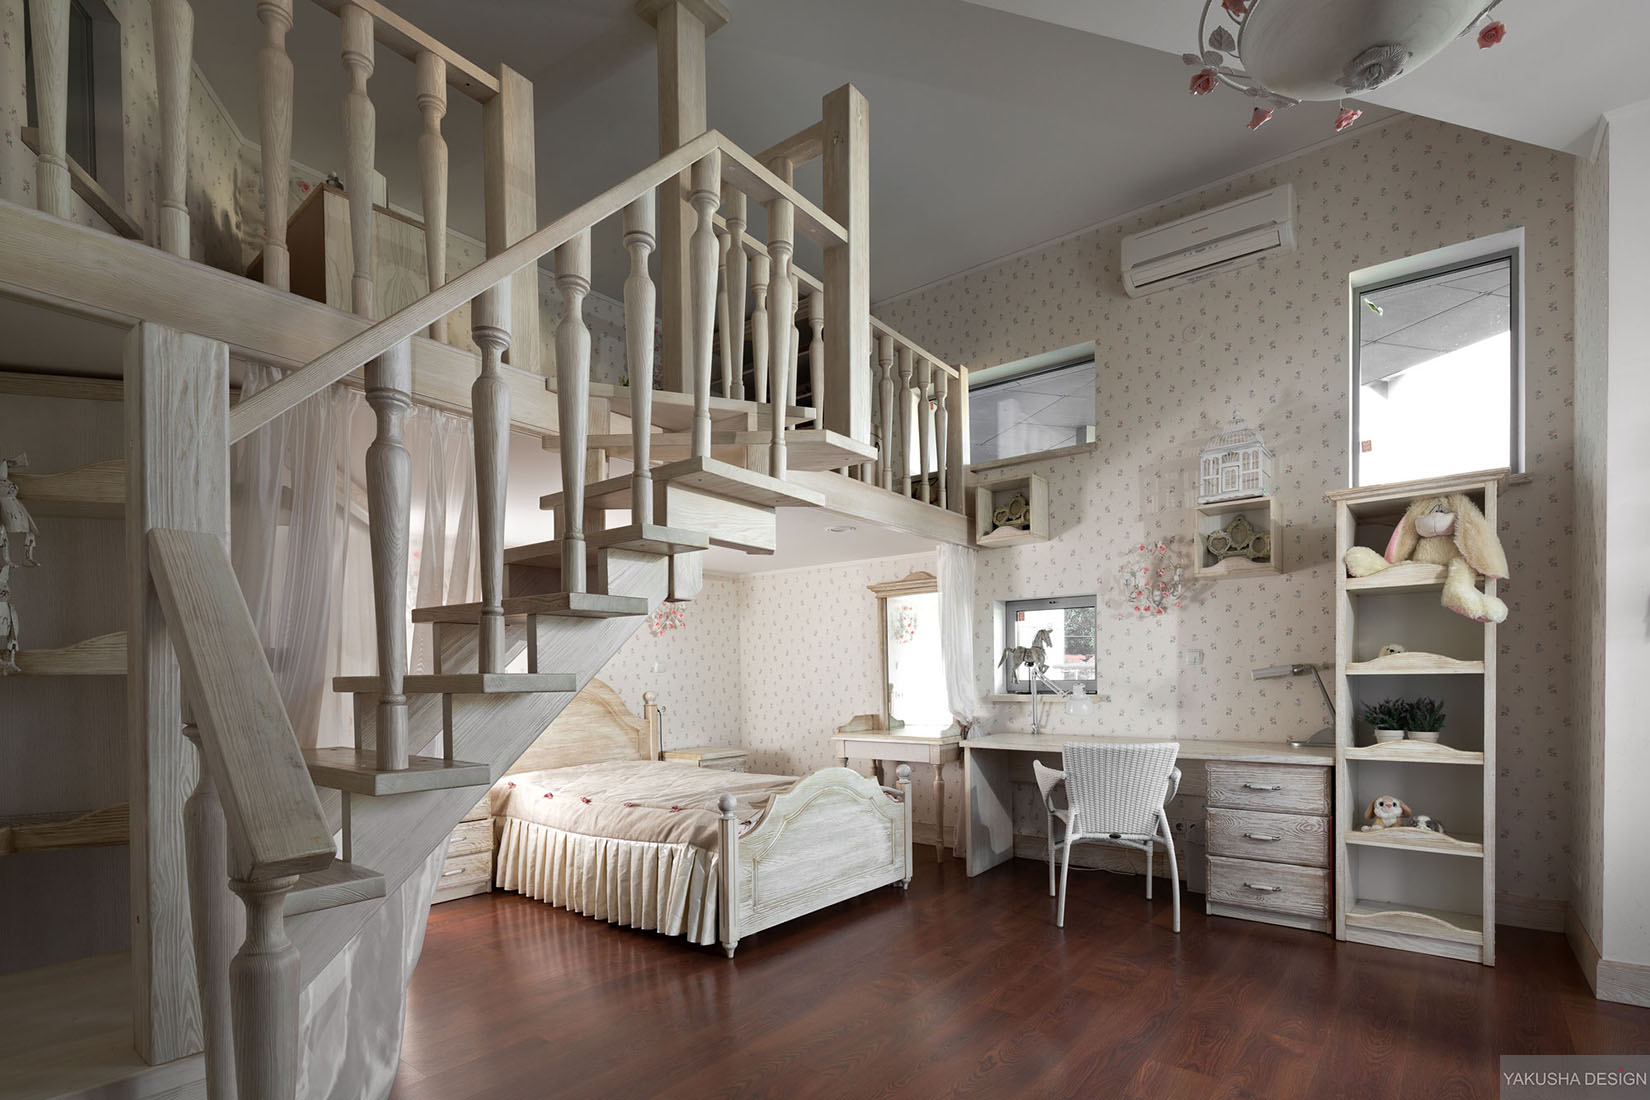 Mezzanine Bed Design dreamy floral and white bedroom with mezzanine homework space and